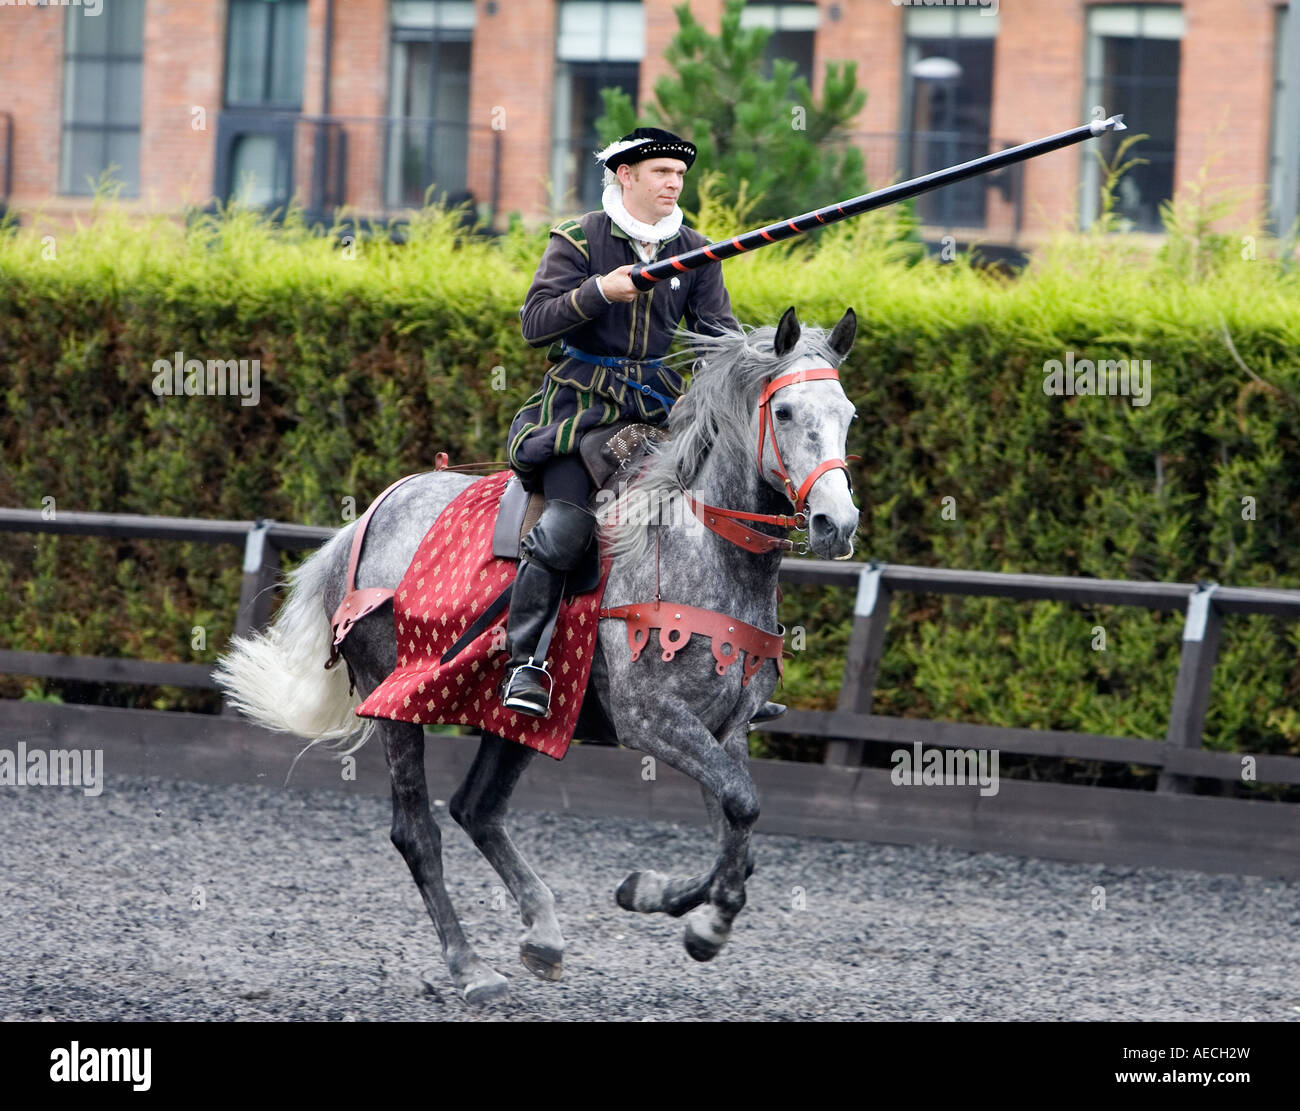 Medieval knight - Stock Image